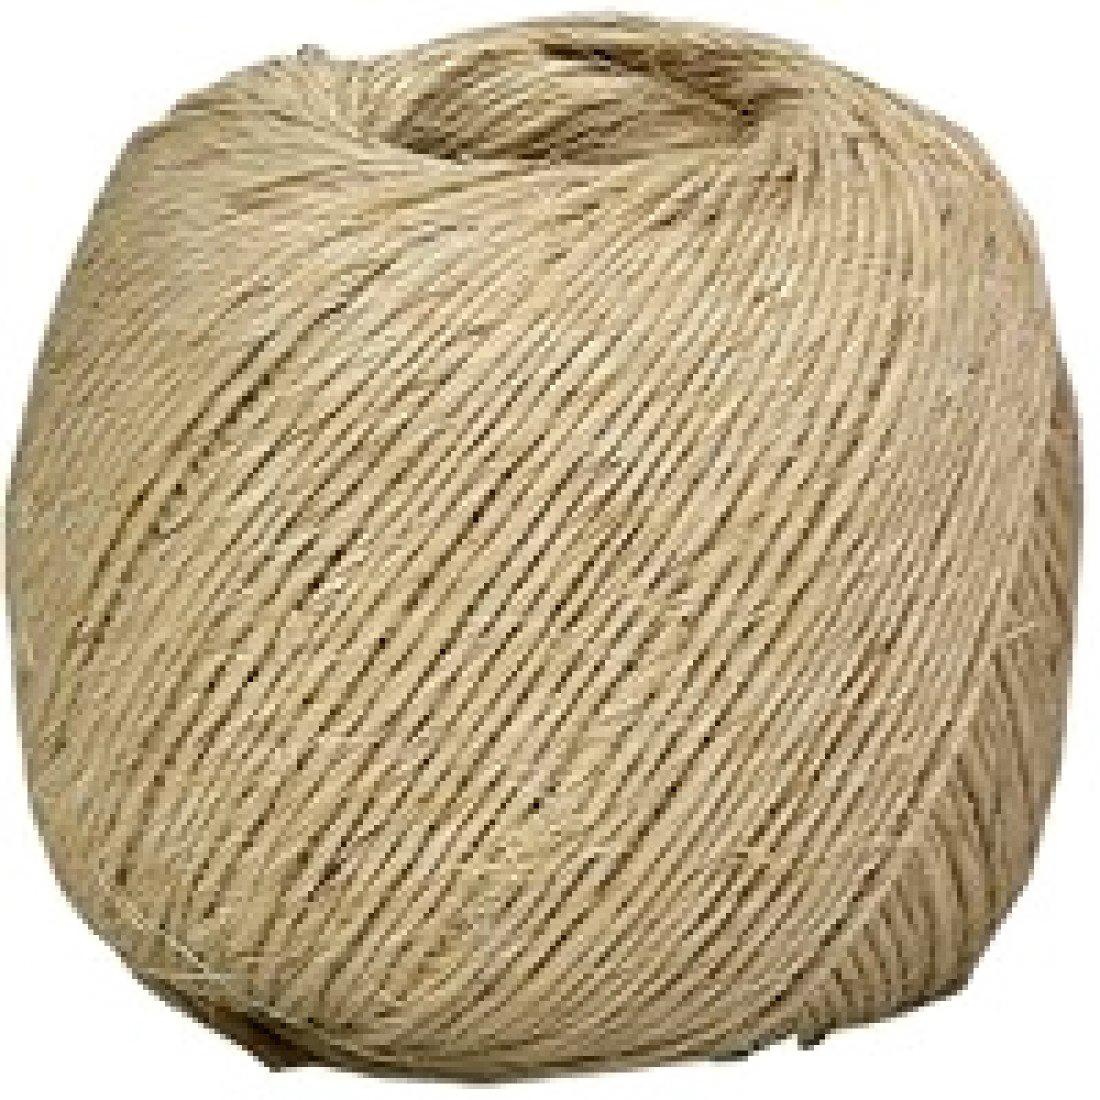 TWINE SISAL 525FT XTRA STRNG